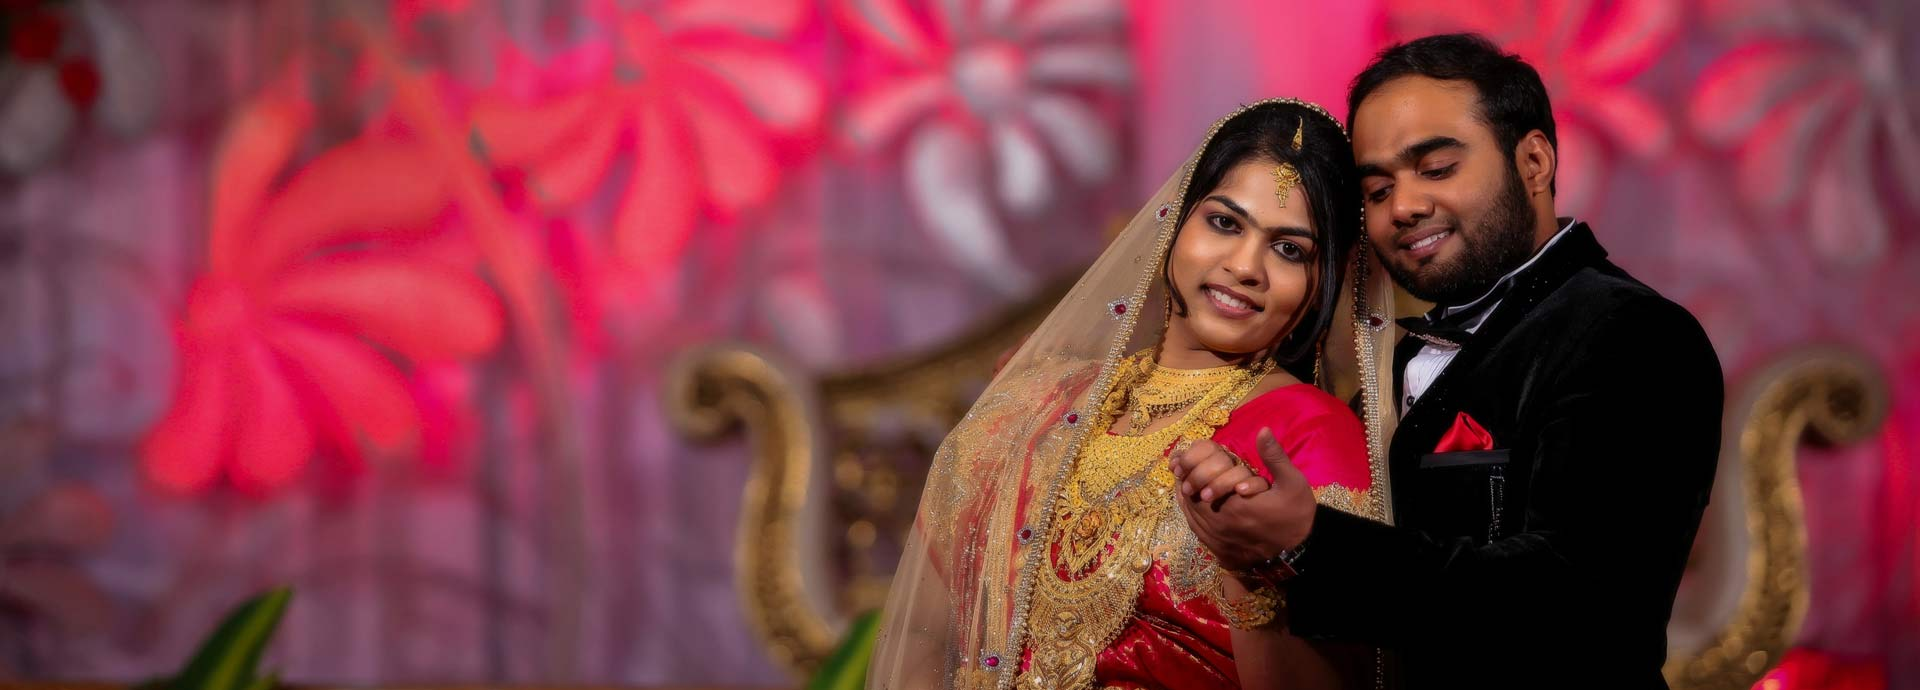 Professional Candid Photography in Coimbatore